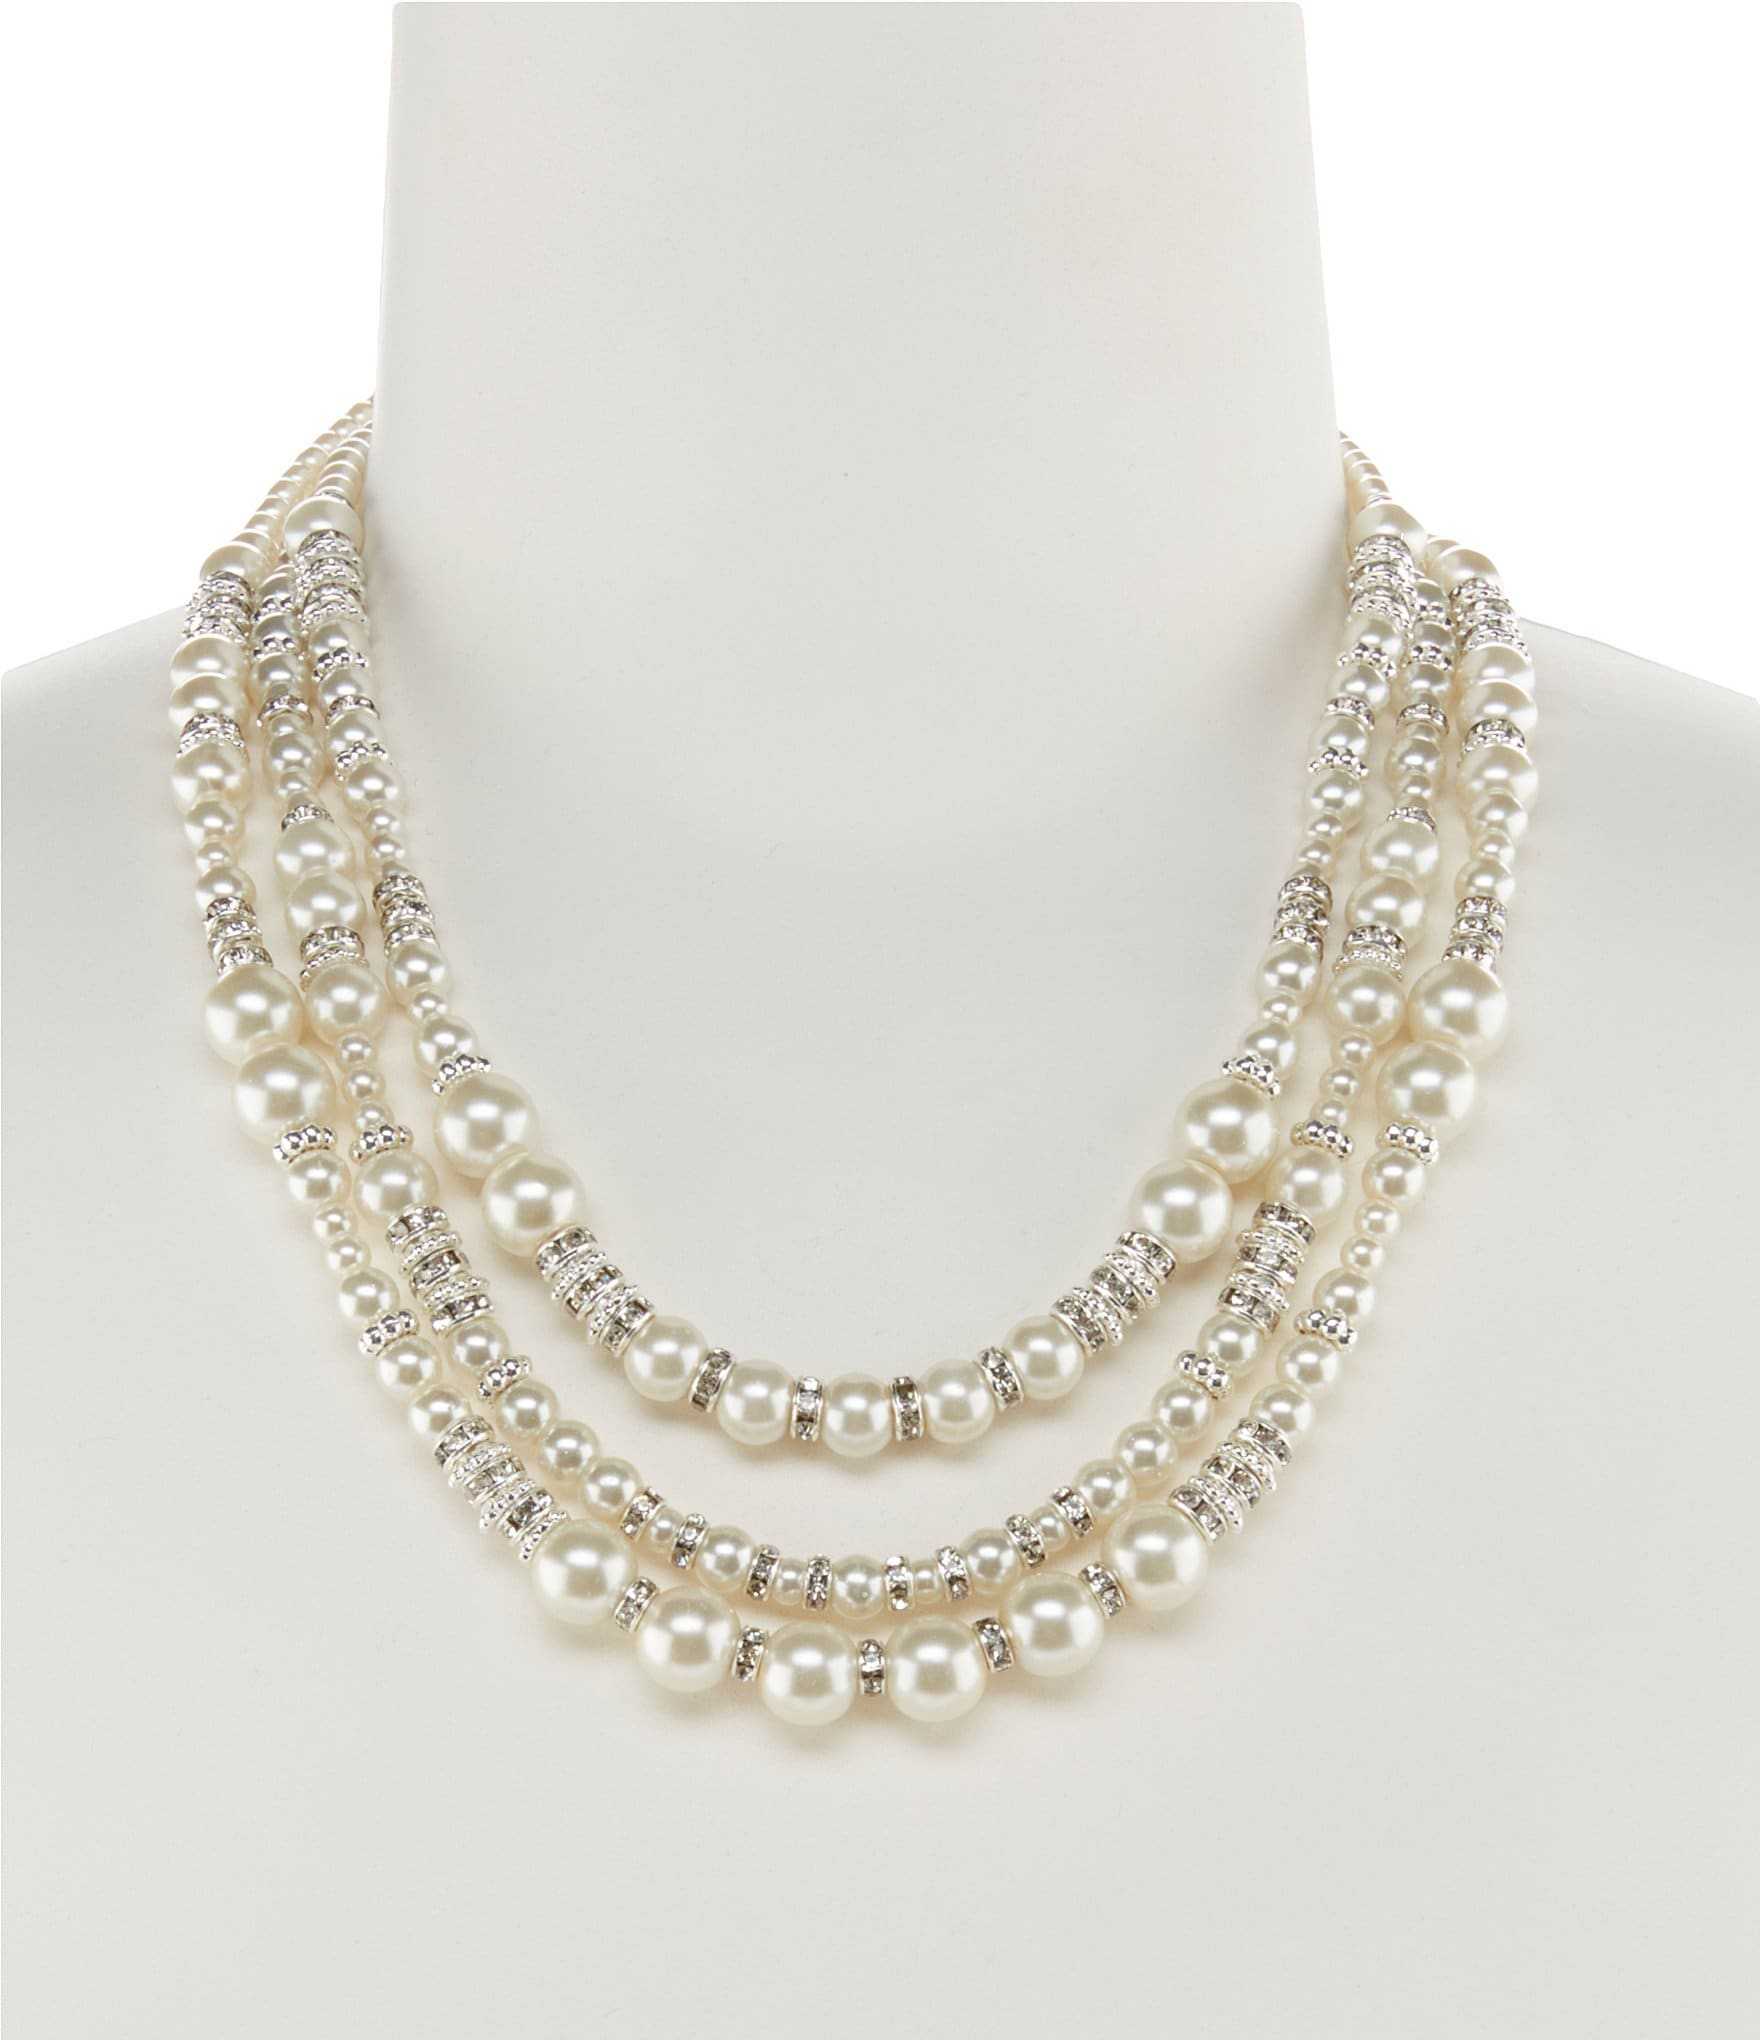 quality aaa jewellery akoya necklace pearl japanese pearls white